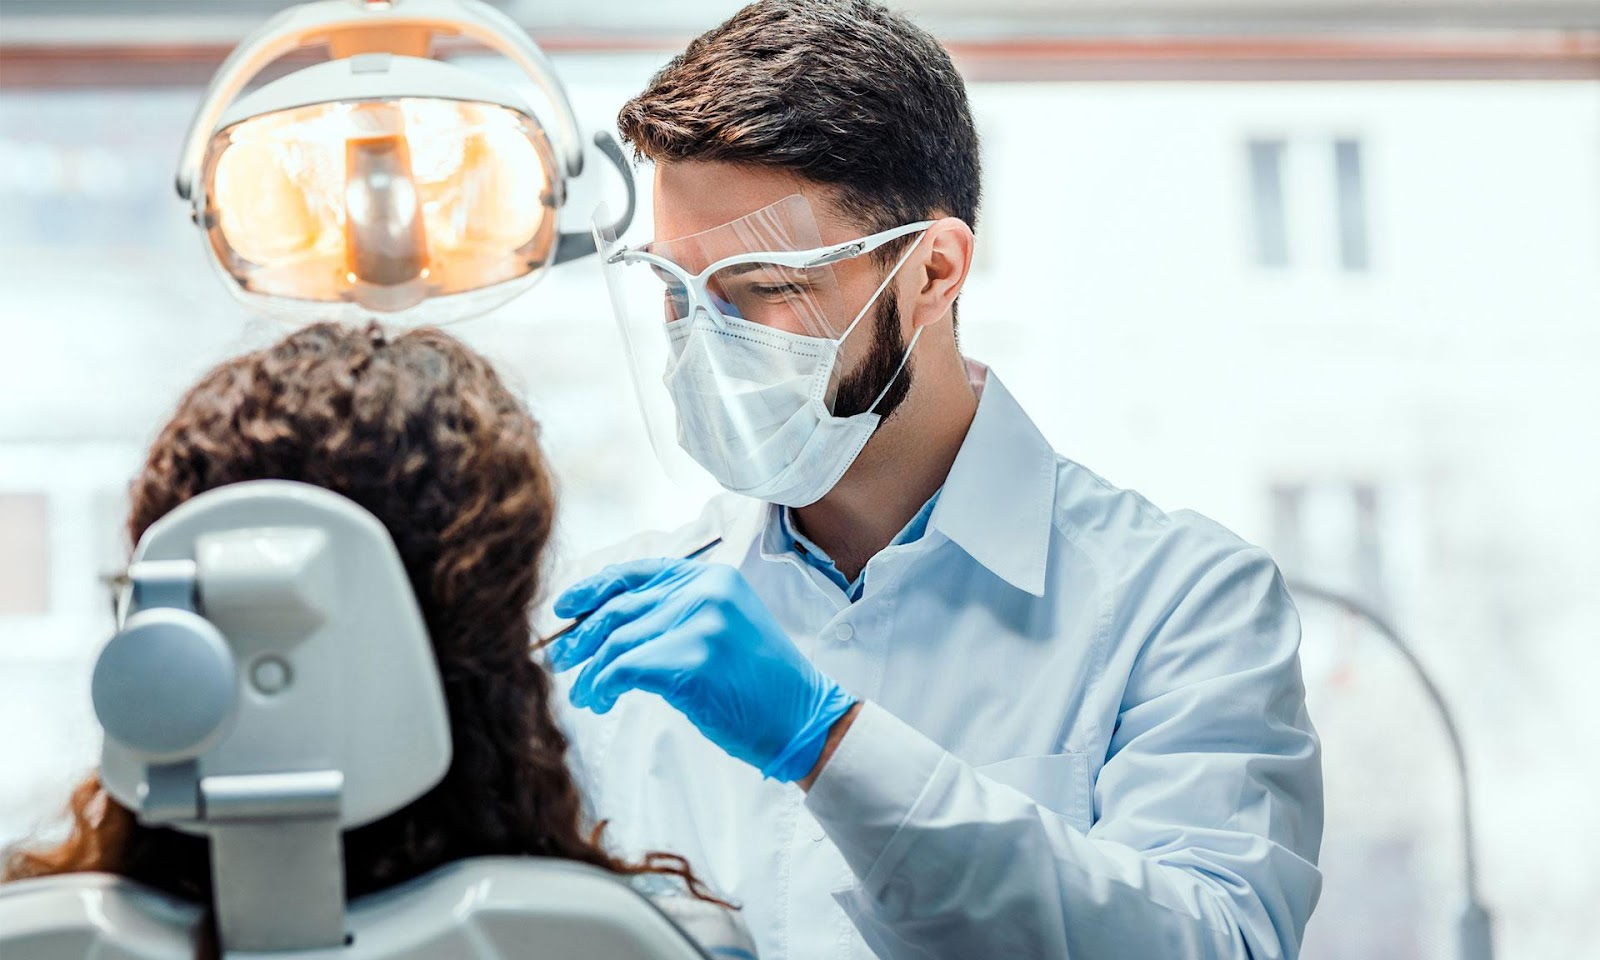 Visit Dentistas: What Should You Expect During Check-Up?